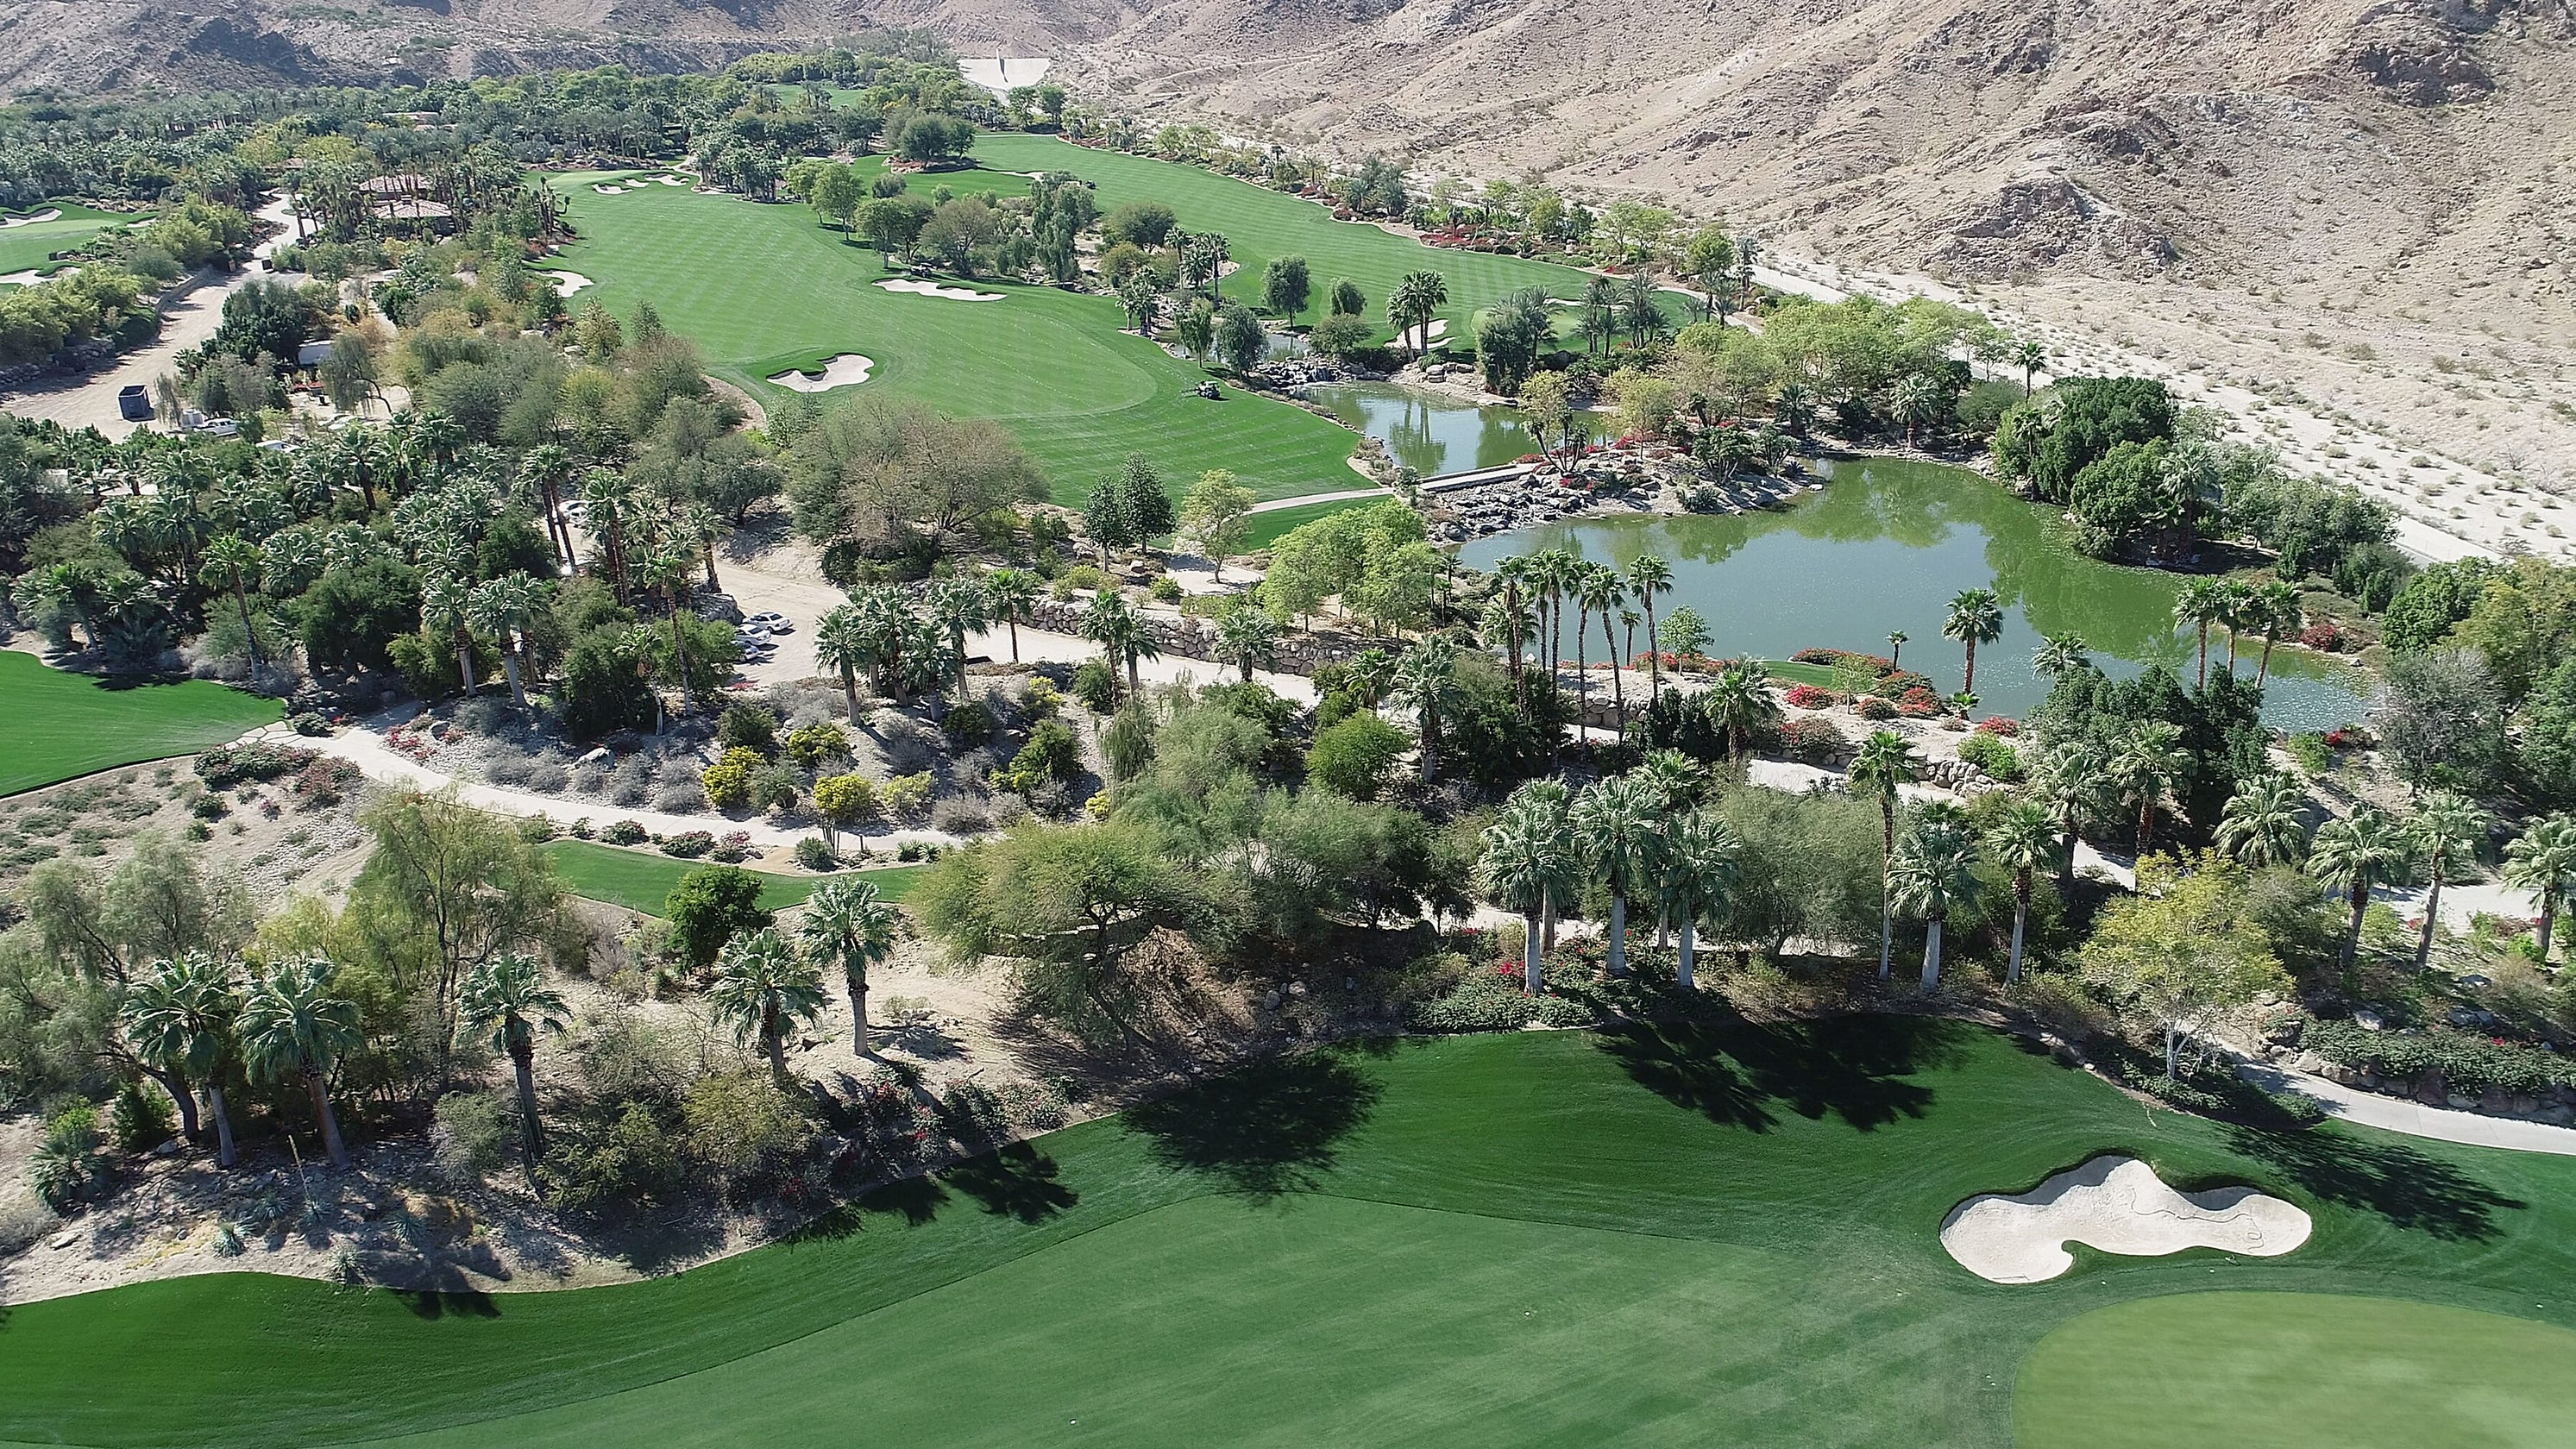 Larry Ellison plans to turn Porcupine Creek estate into a private, exclusive resort